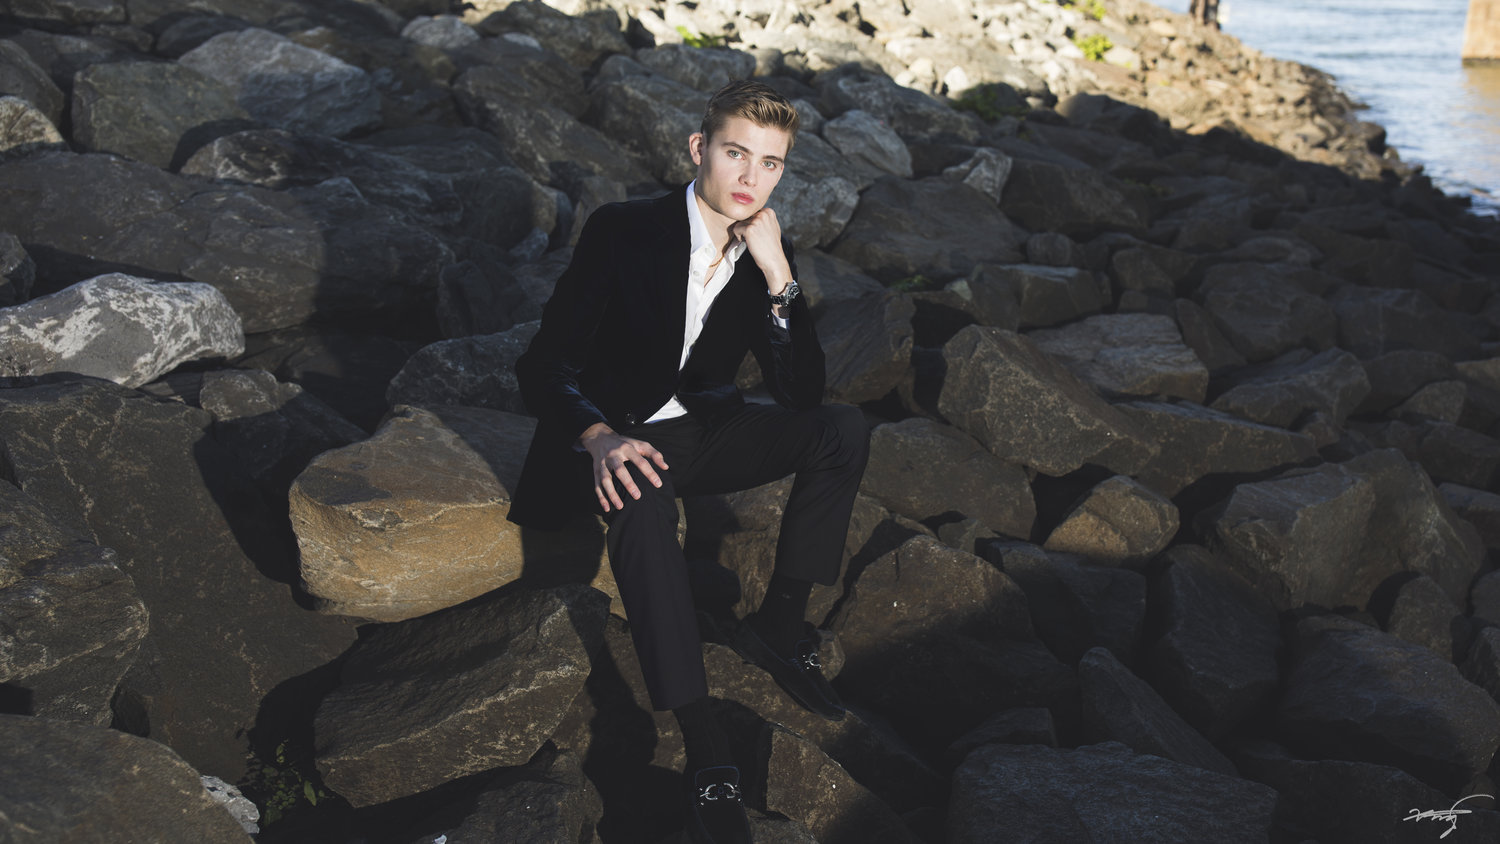 COLTON PELTIER BIOGRAPHY    - At the age of nine, Colton Peltier made his orchestral debut with the Saint Paul Chamber Orchestra and since then has performed extensively as a soloist and has performed numerous concerti under the batons of conductors such as Gianandrea Noseda, Lawrence Leighton Smith and Osmo Vȁnska...